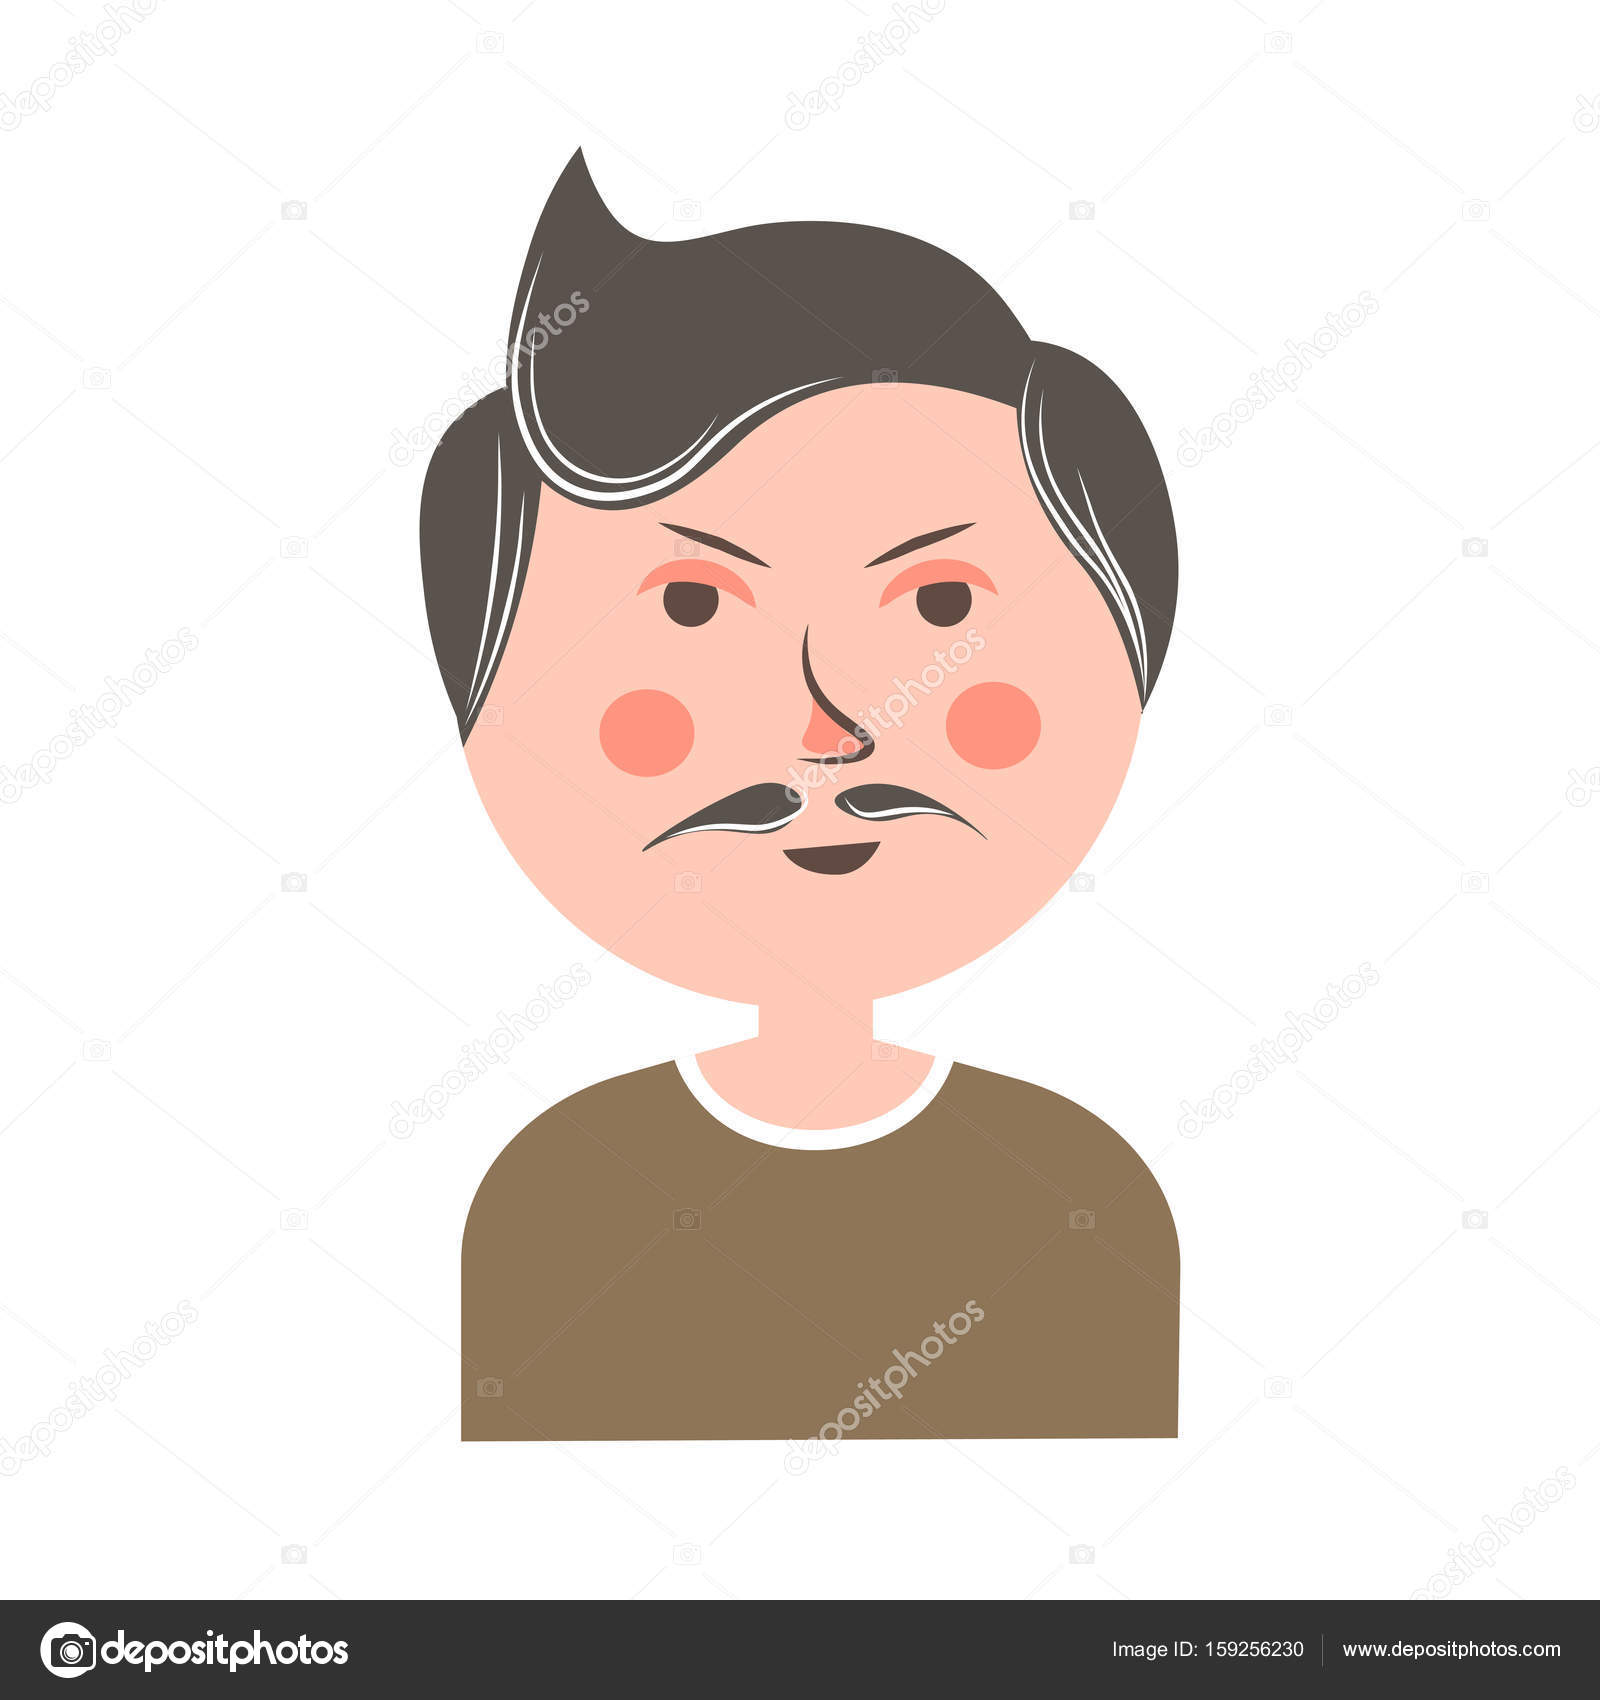 Cartoon Characters With Big Noses : Cartoon character with big nose and mustache fandifavi